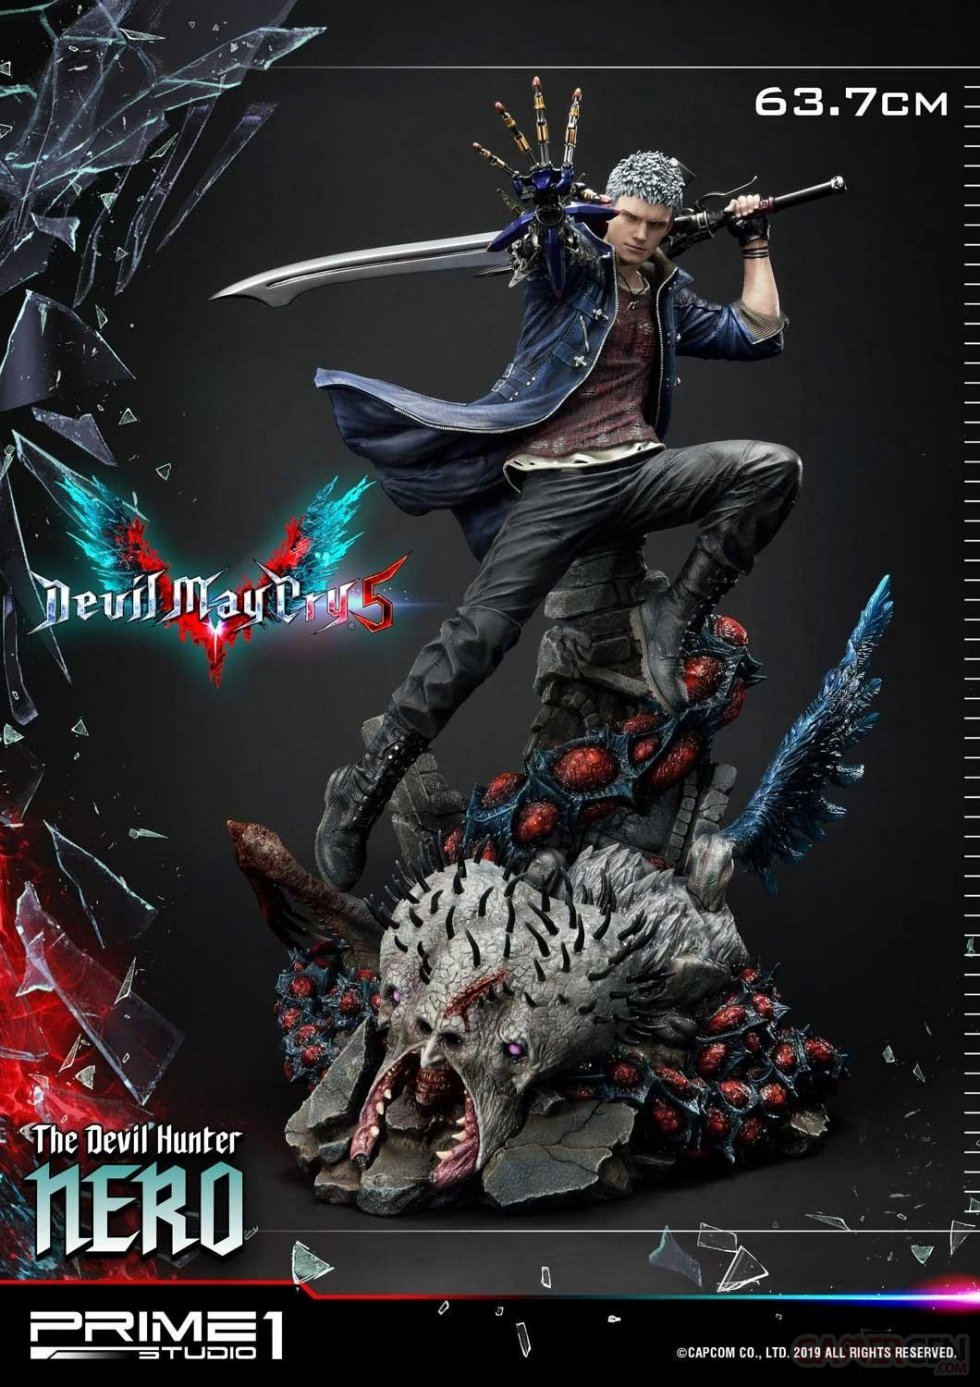 Devil-May-Cry-5-figurine-statuette-Prime-1-Studio-Nero-01-28-06-2019